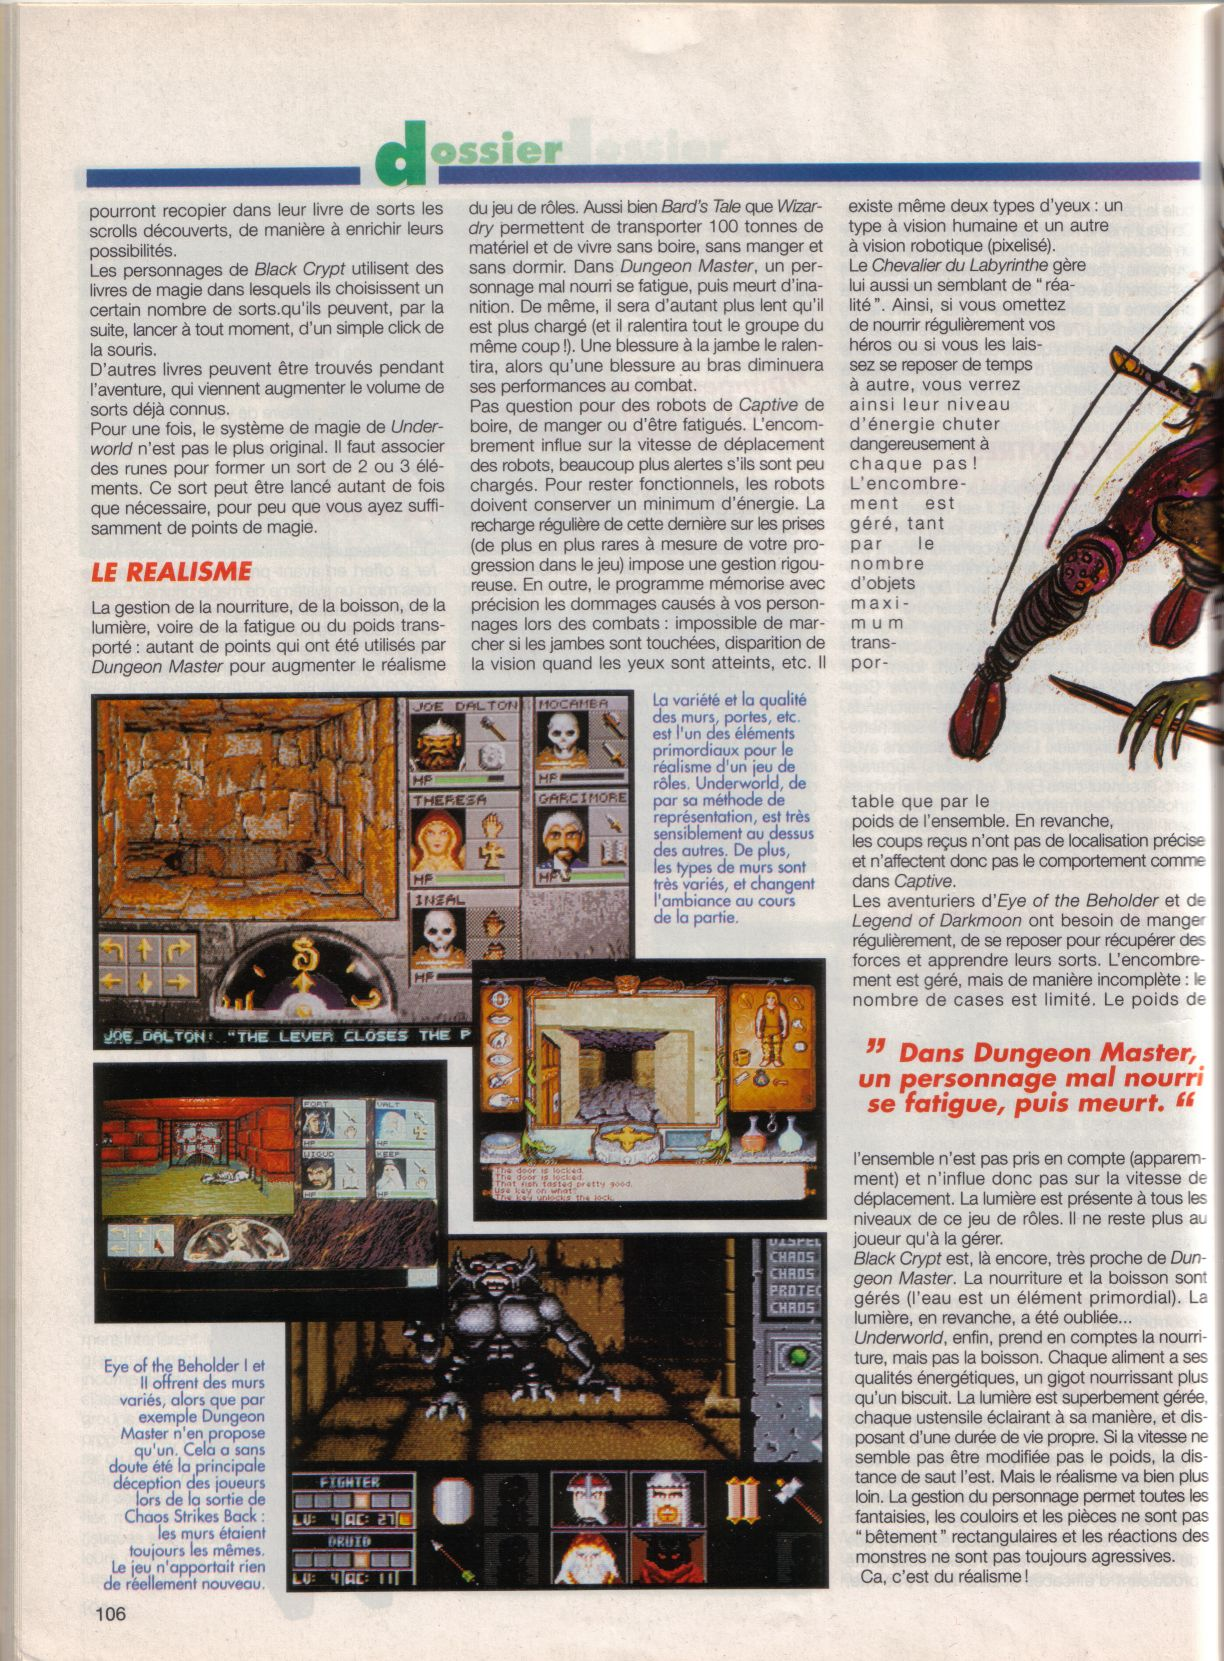 Dungeon Master Article published in French magazine 'Tilt', Issue #105, September 1992, Page 106